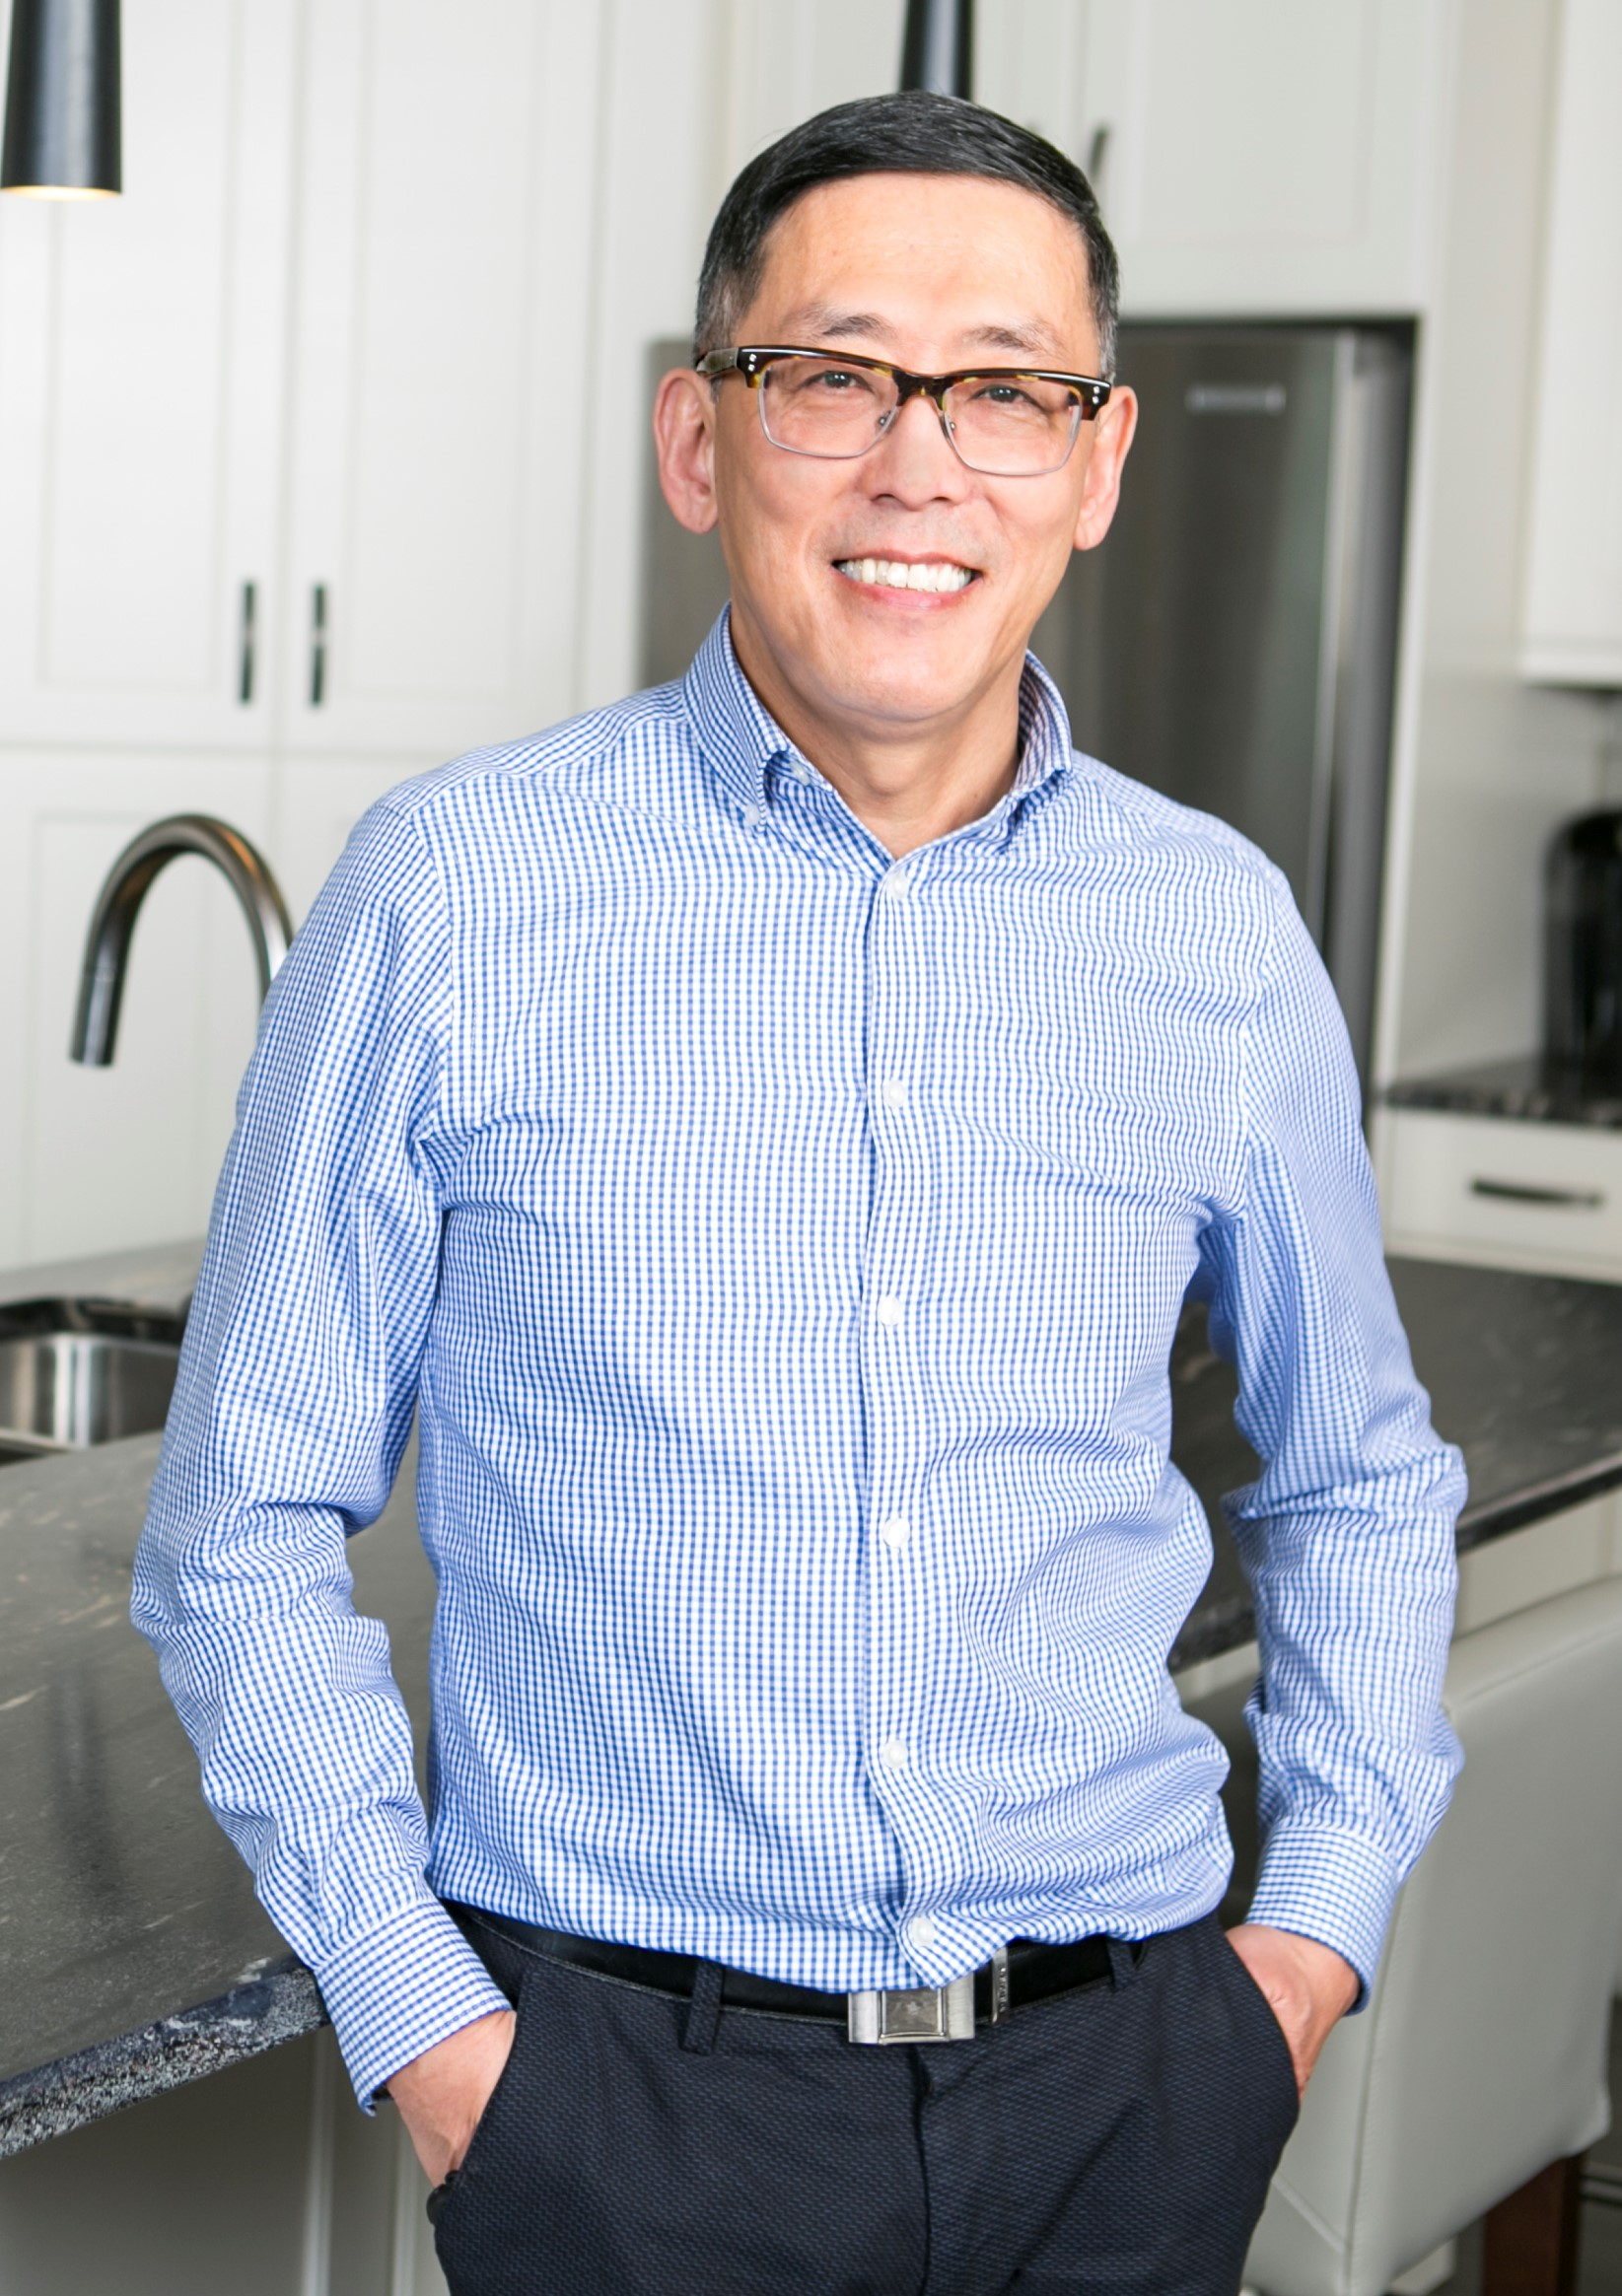 - Wilson came to Canada by himself at just 19 years old from Hong Kong to attend University. Wilson has been an Edmontonian for over 40 years, and has past experience as a business owner.